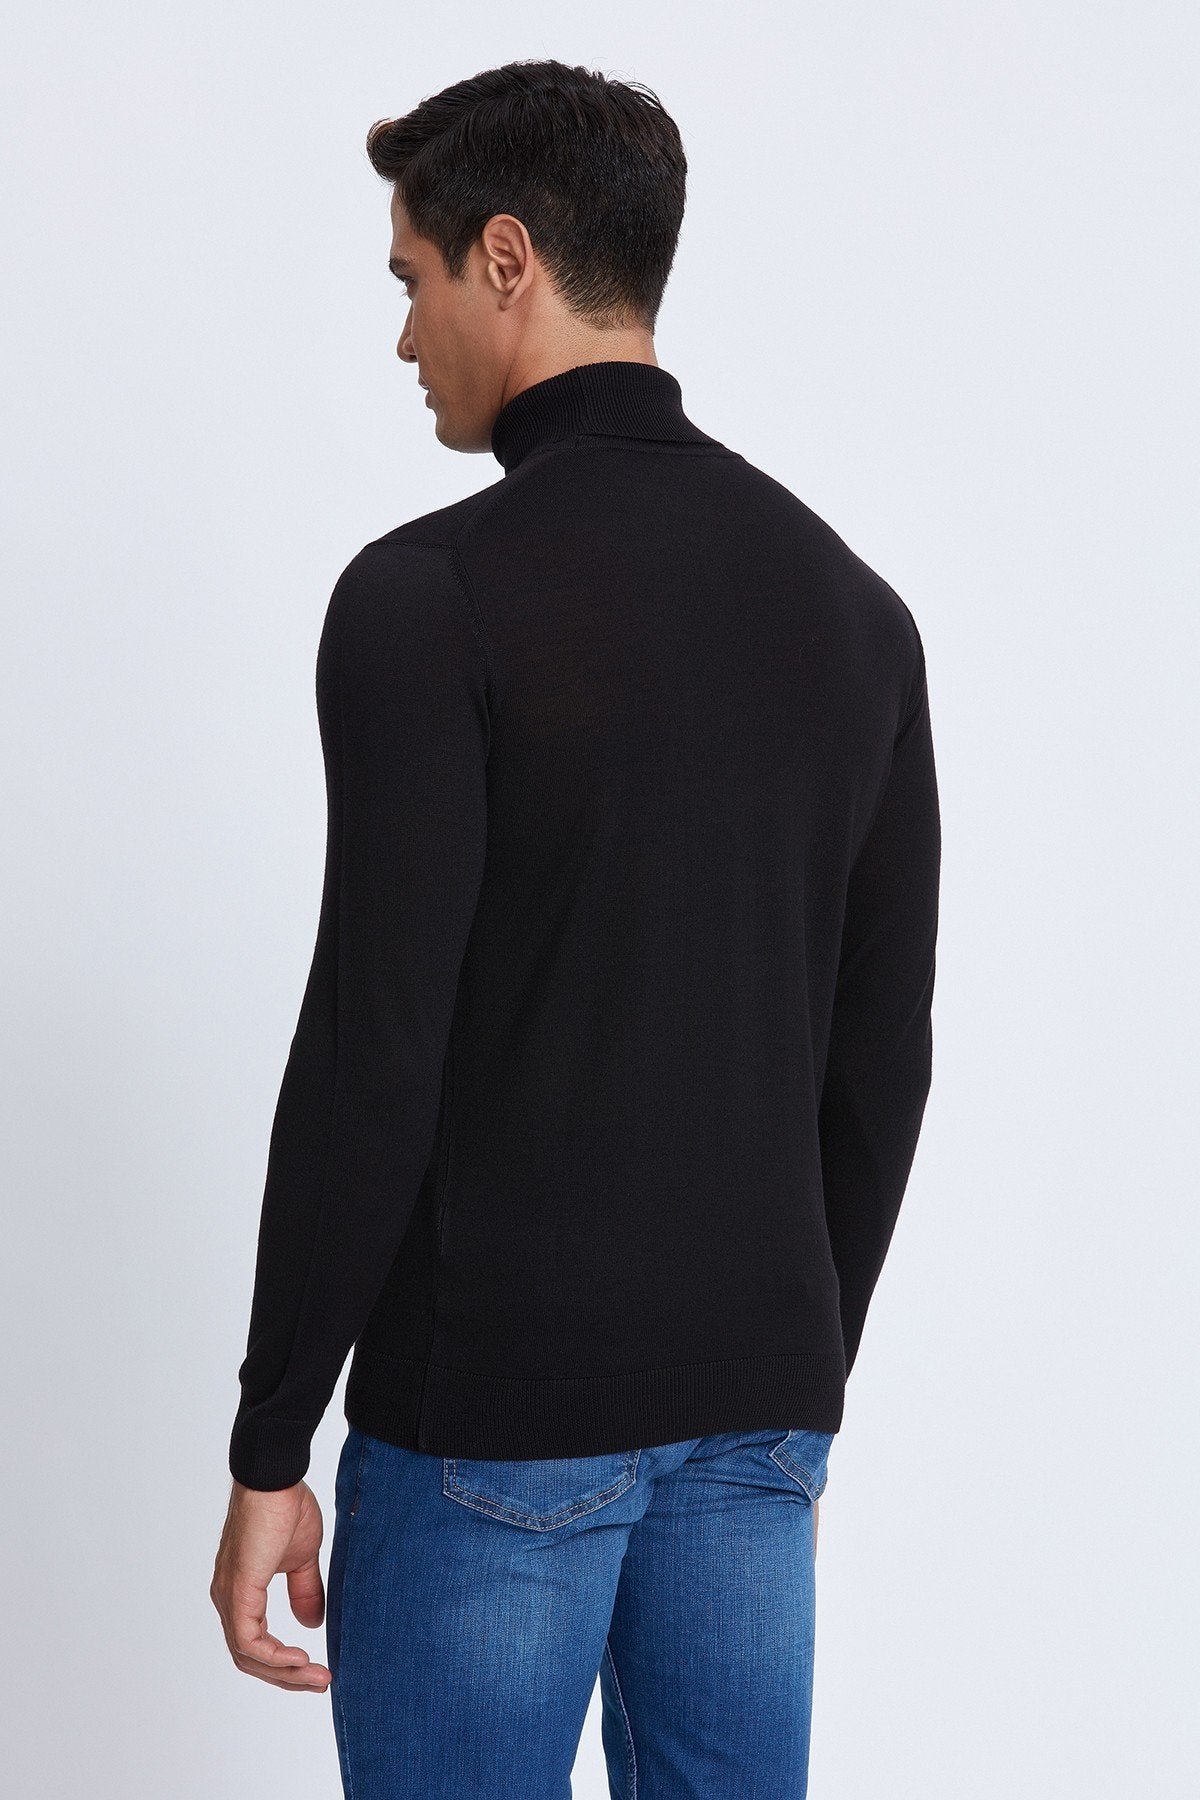 Turtleneck Merino Sweater in Black